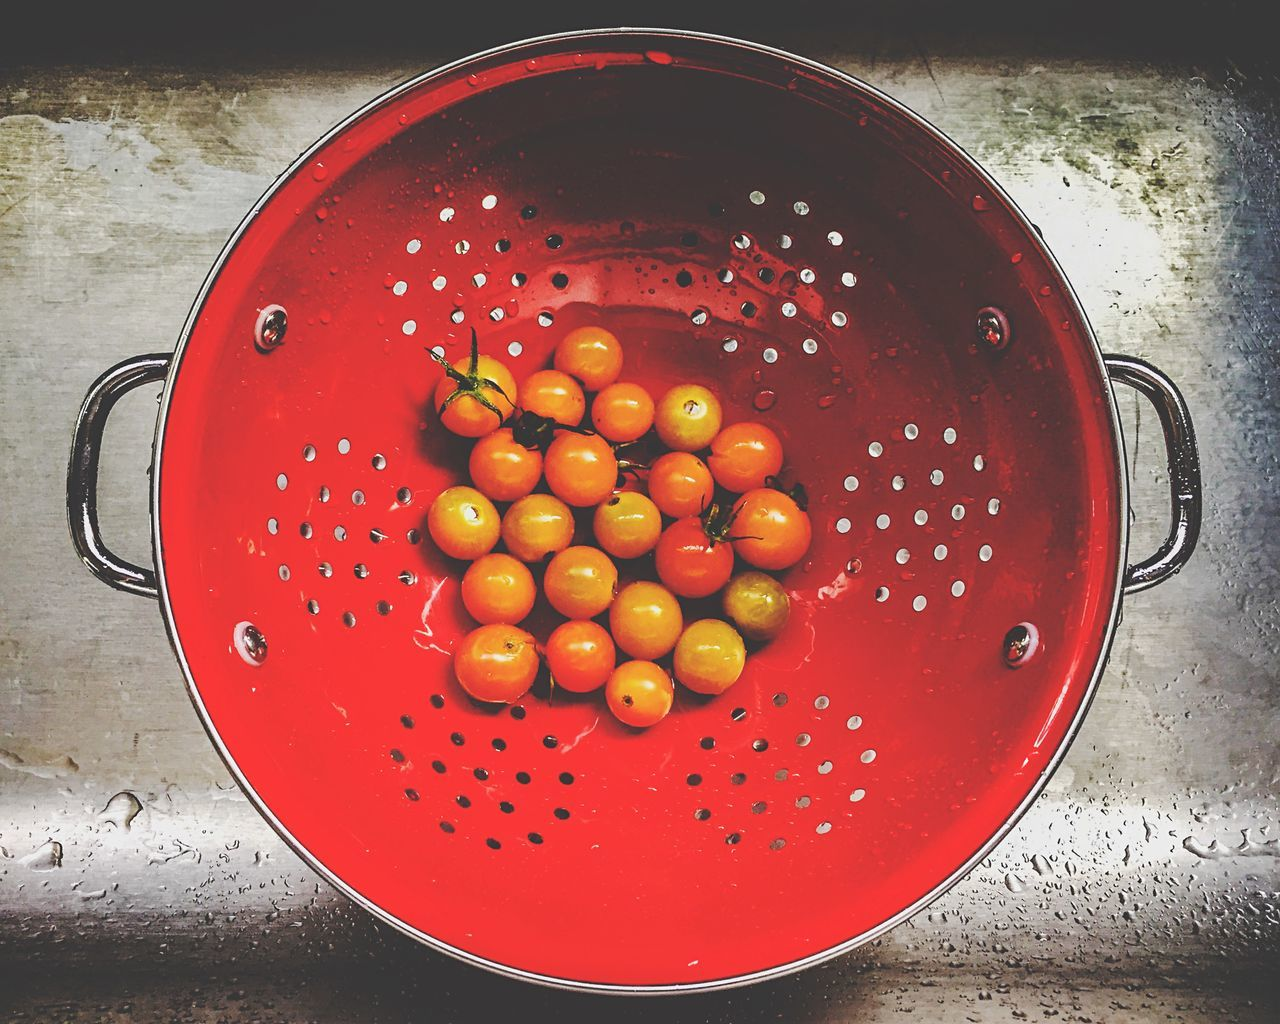 Directly above shot of cherry tomatoes in saucepan